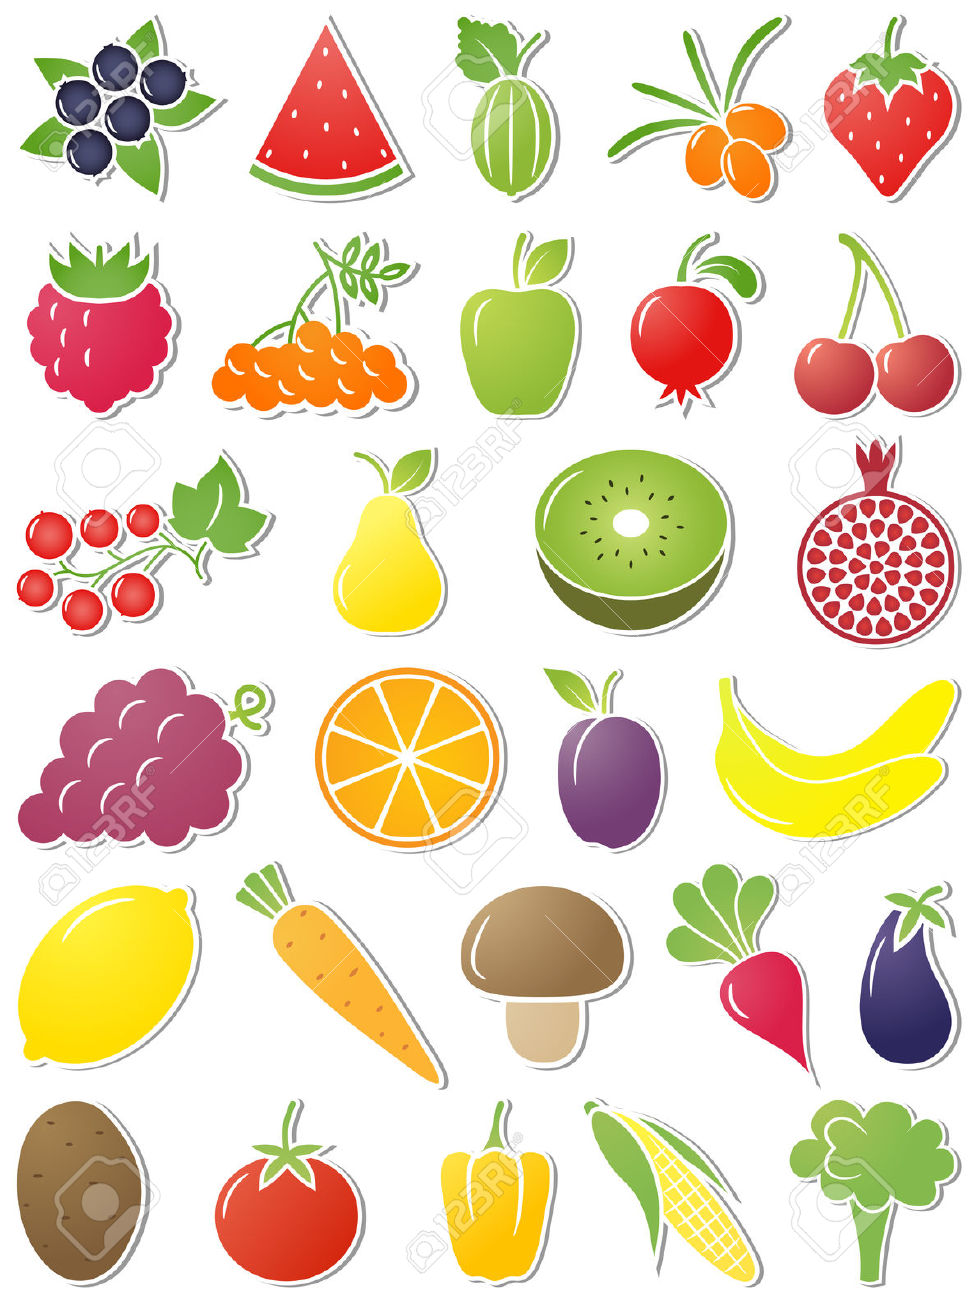 The Set Of Food Icons. Vector Illustration. Royalty Free Cliparts.